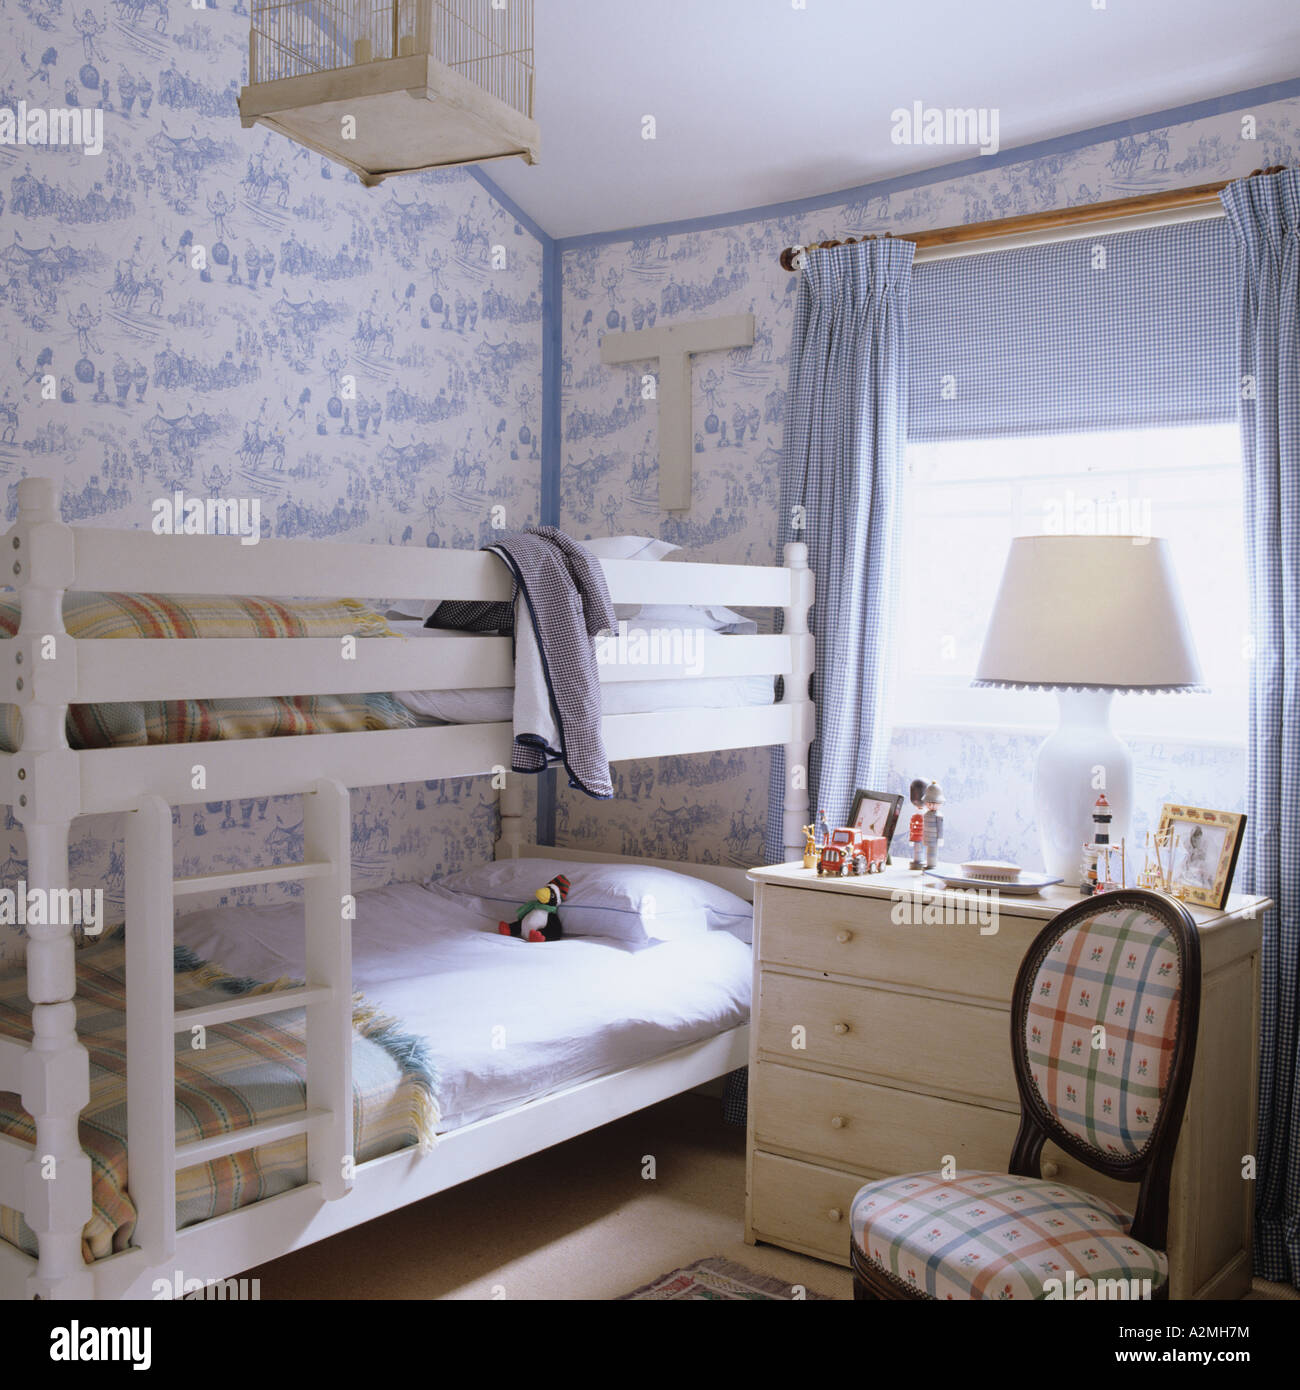 Genial Bunkbed And Toile De Jouy Wallpaper In Bedroom Of English Country House